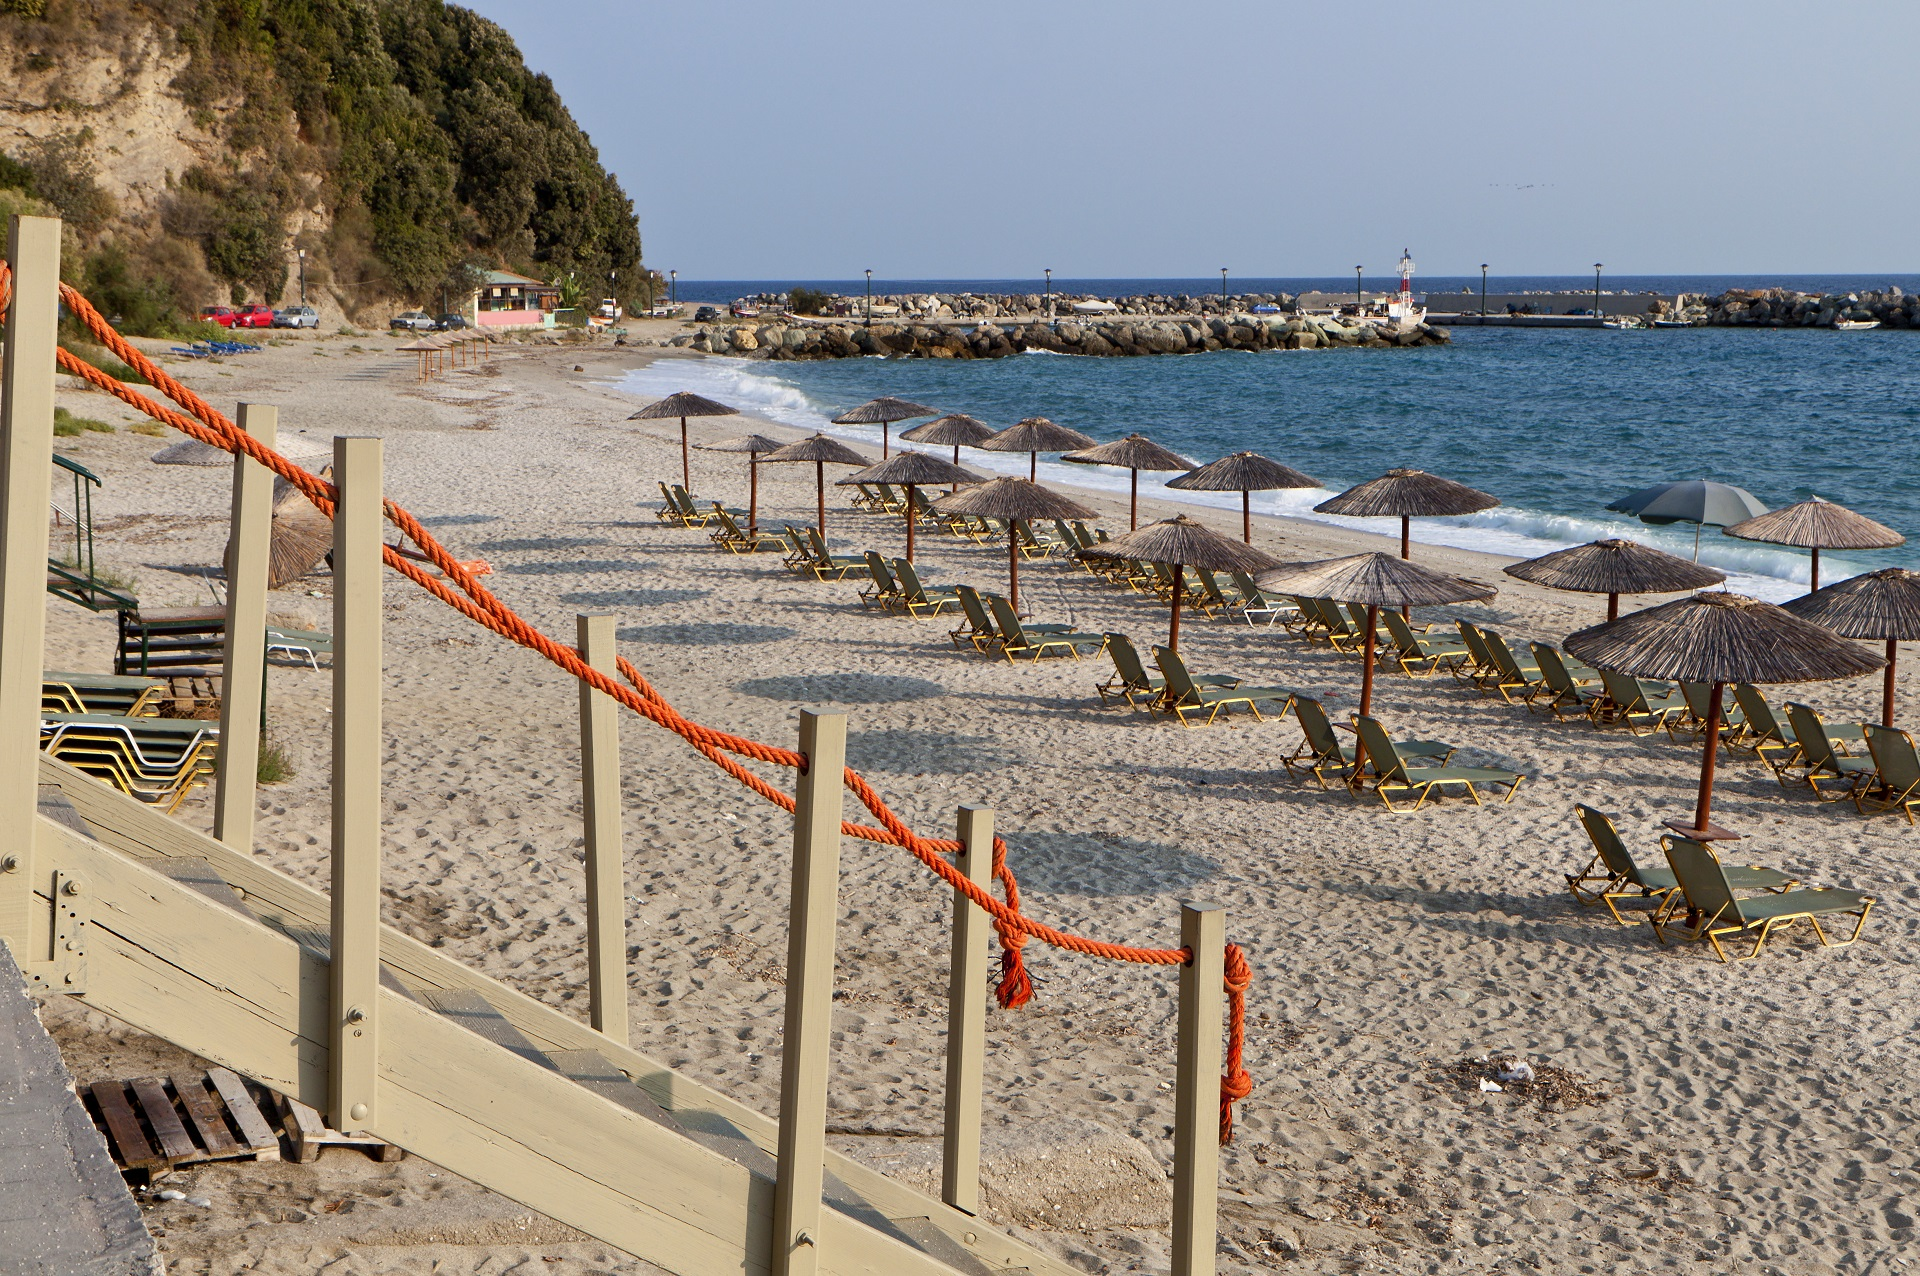 Agios Ioannis village and beach at Pelion